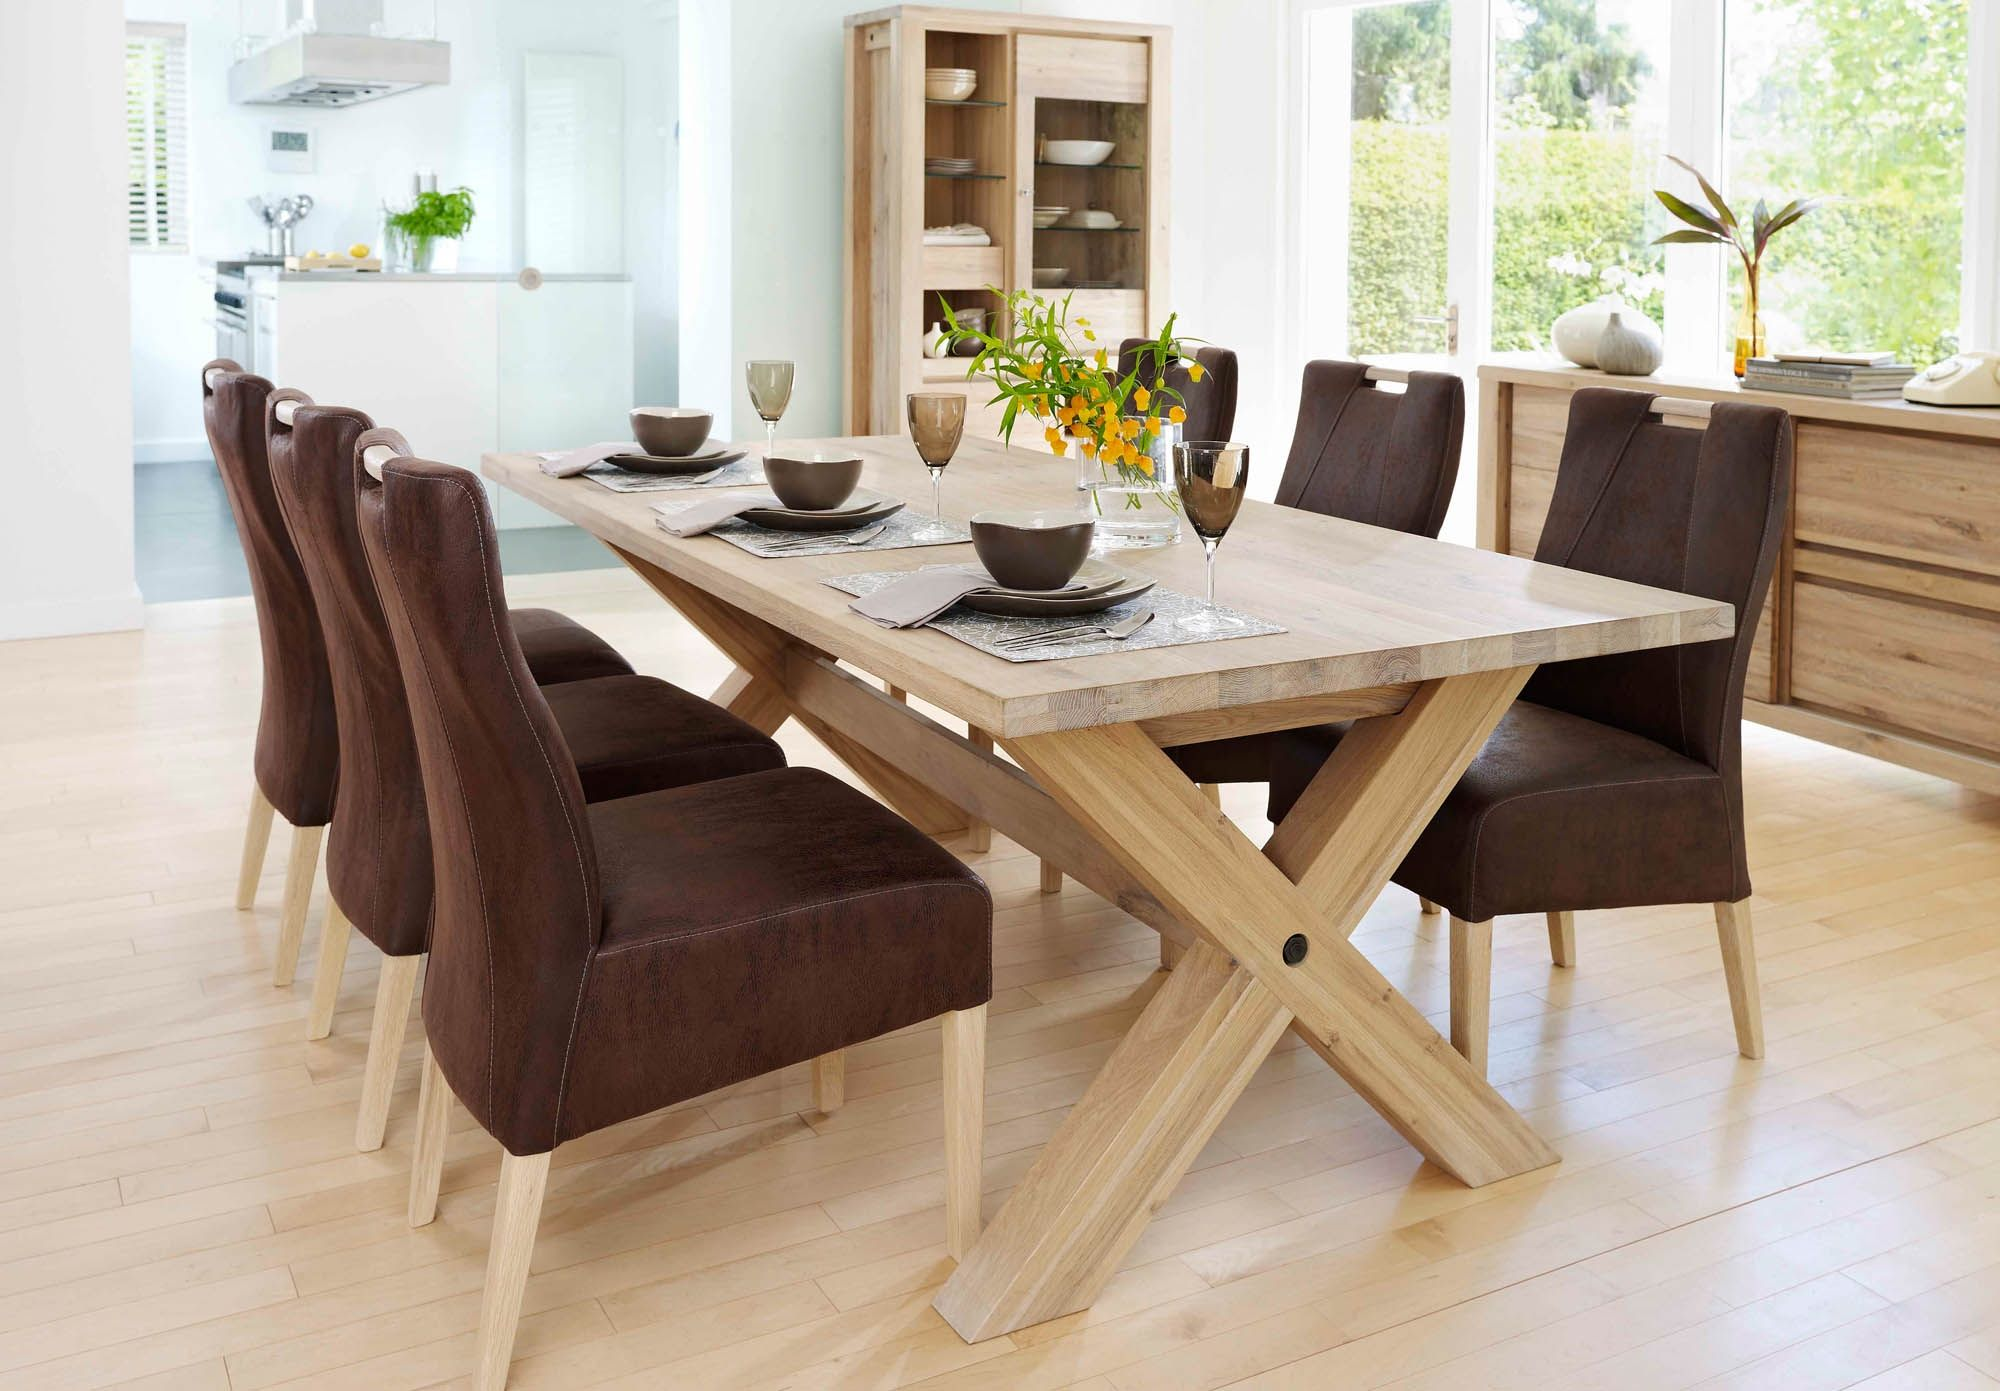 Habufa Winsgate Dining Table At Furniture Village   Habufa Winsgate Dining  Room Furniture At Furniture Village